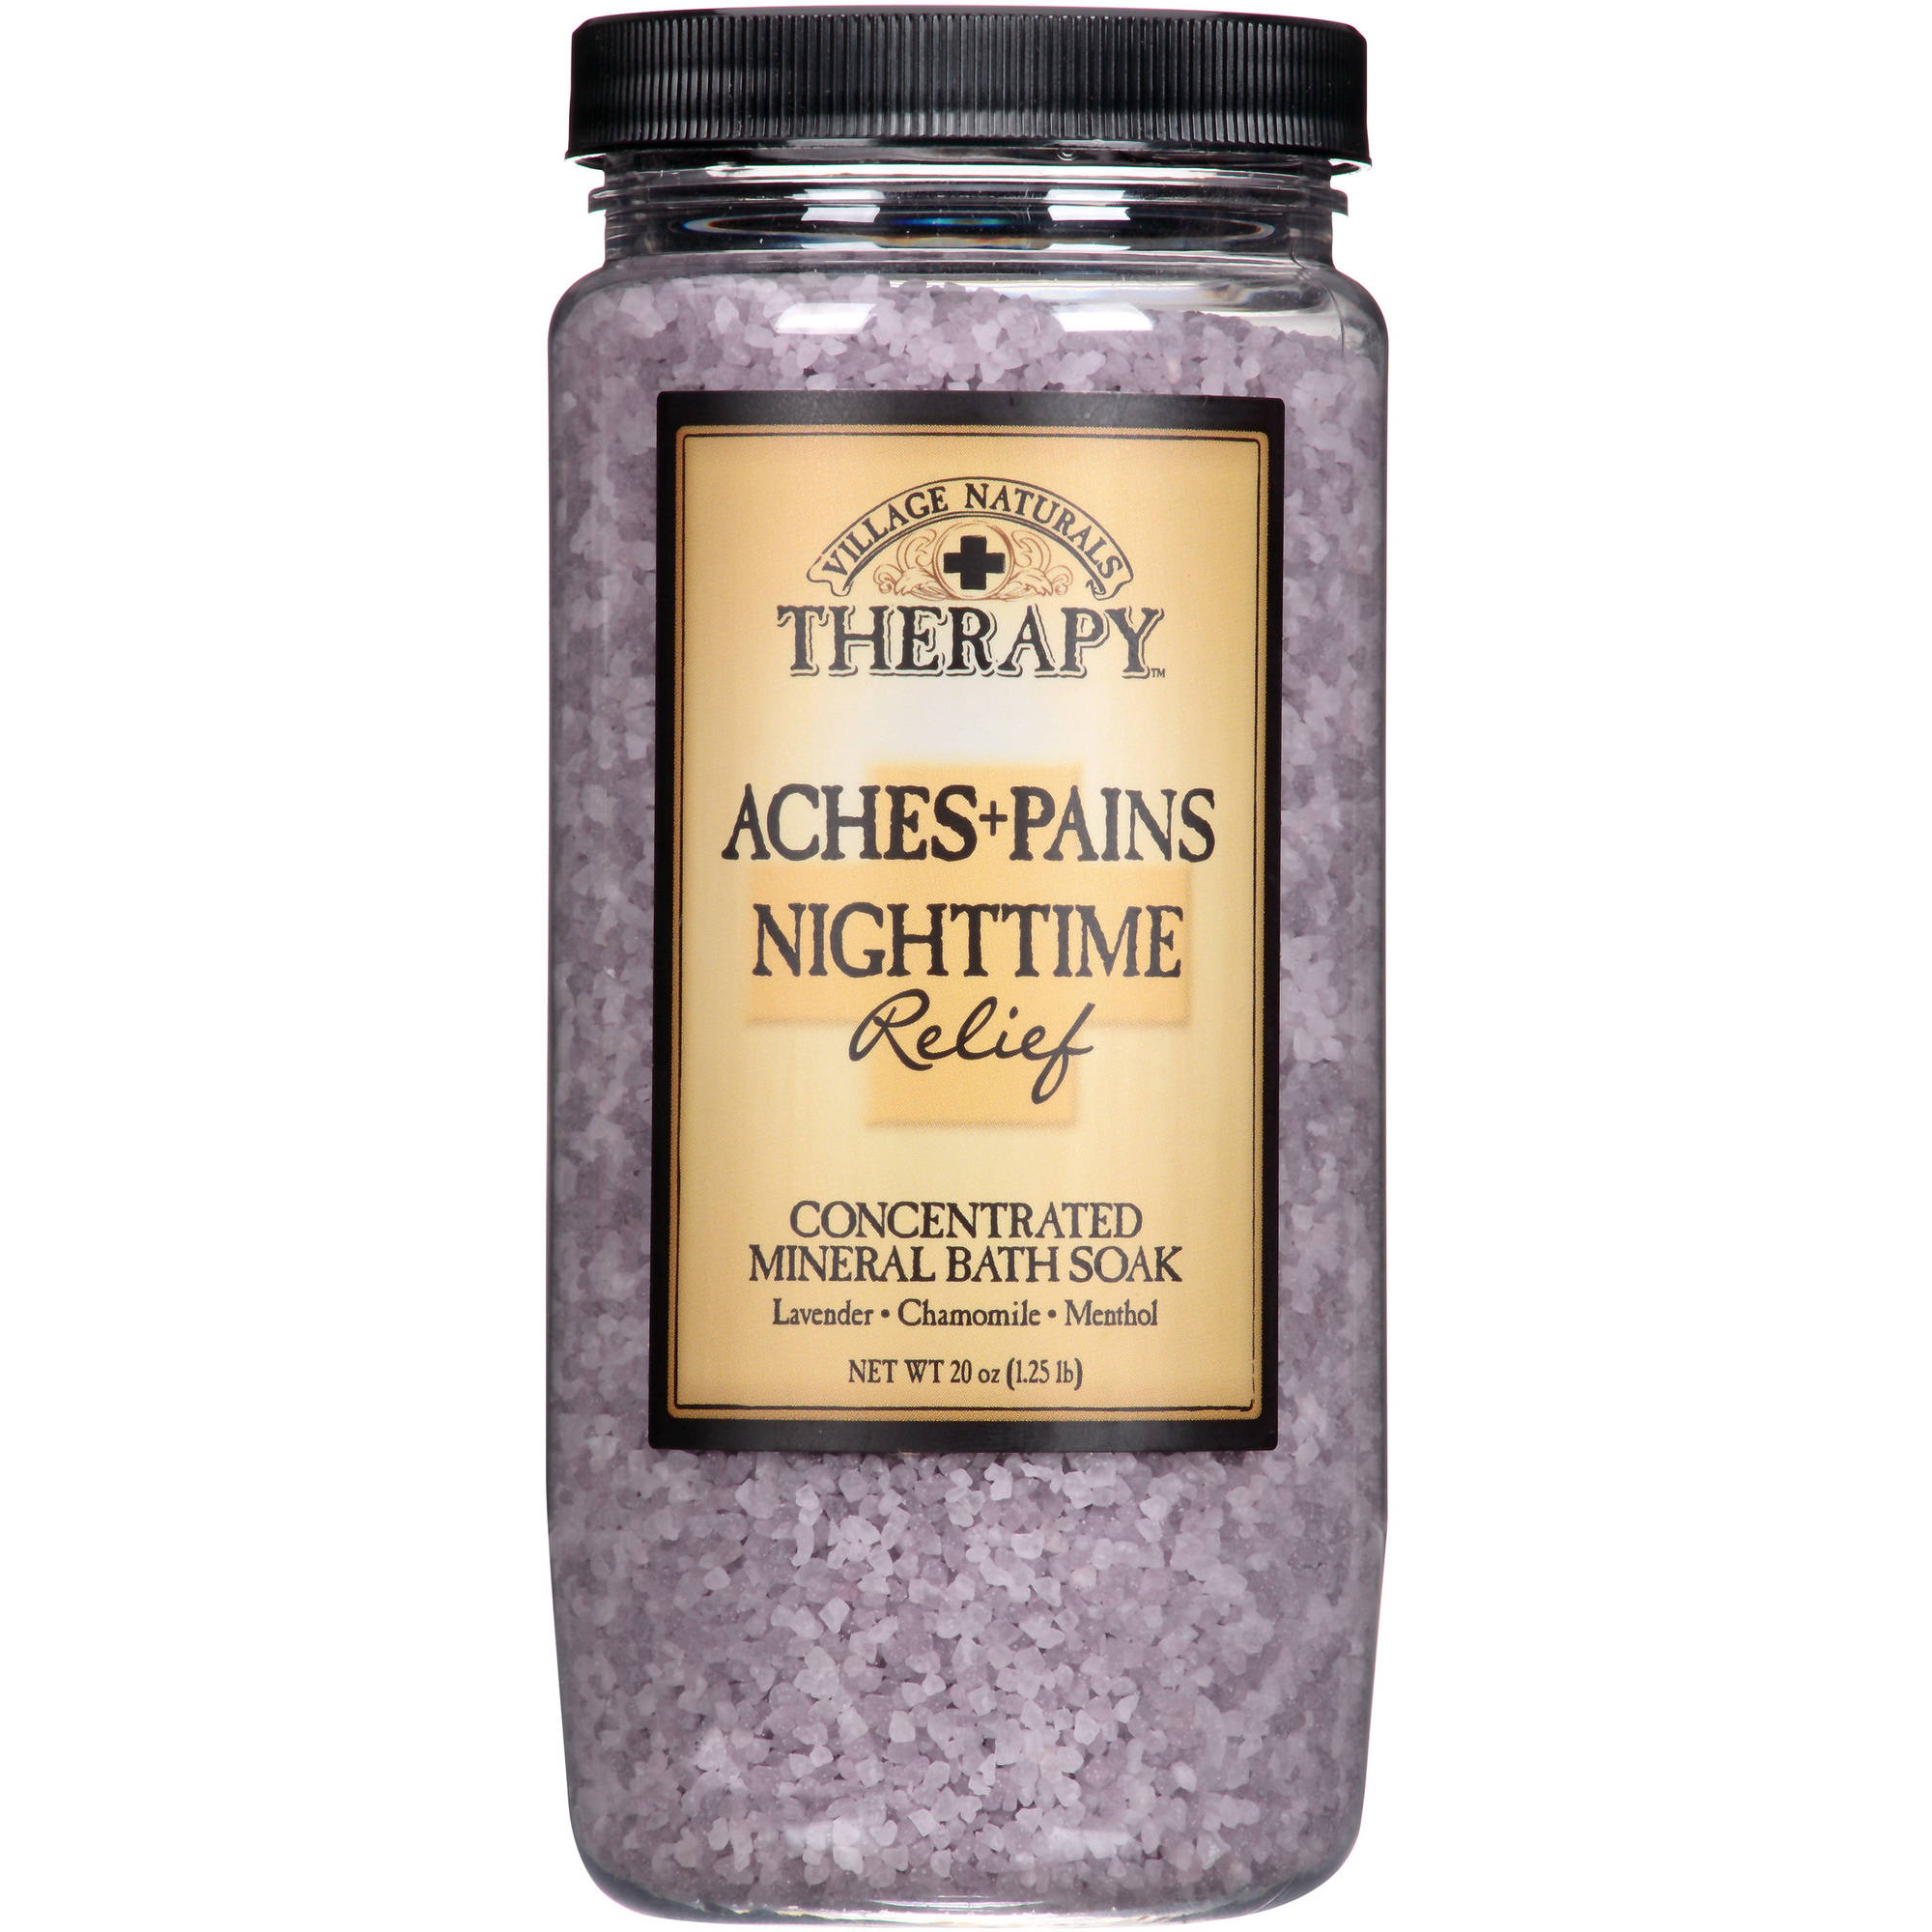 Village Naturals Therapy Aches & Pains Nighttime Relief Concentrated Mineral Bath Soak, 20 fl oz